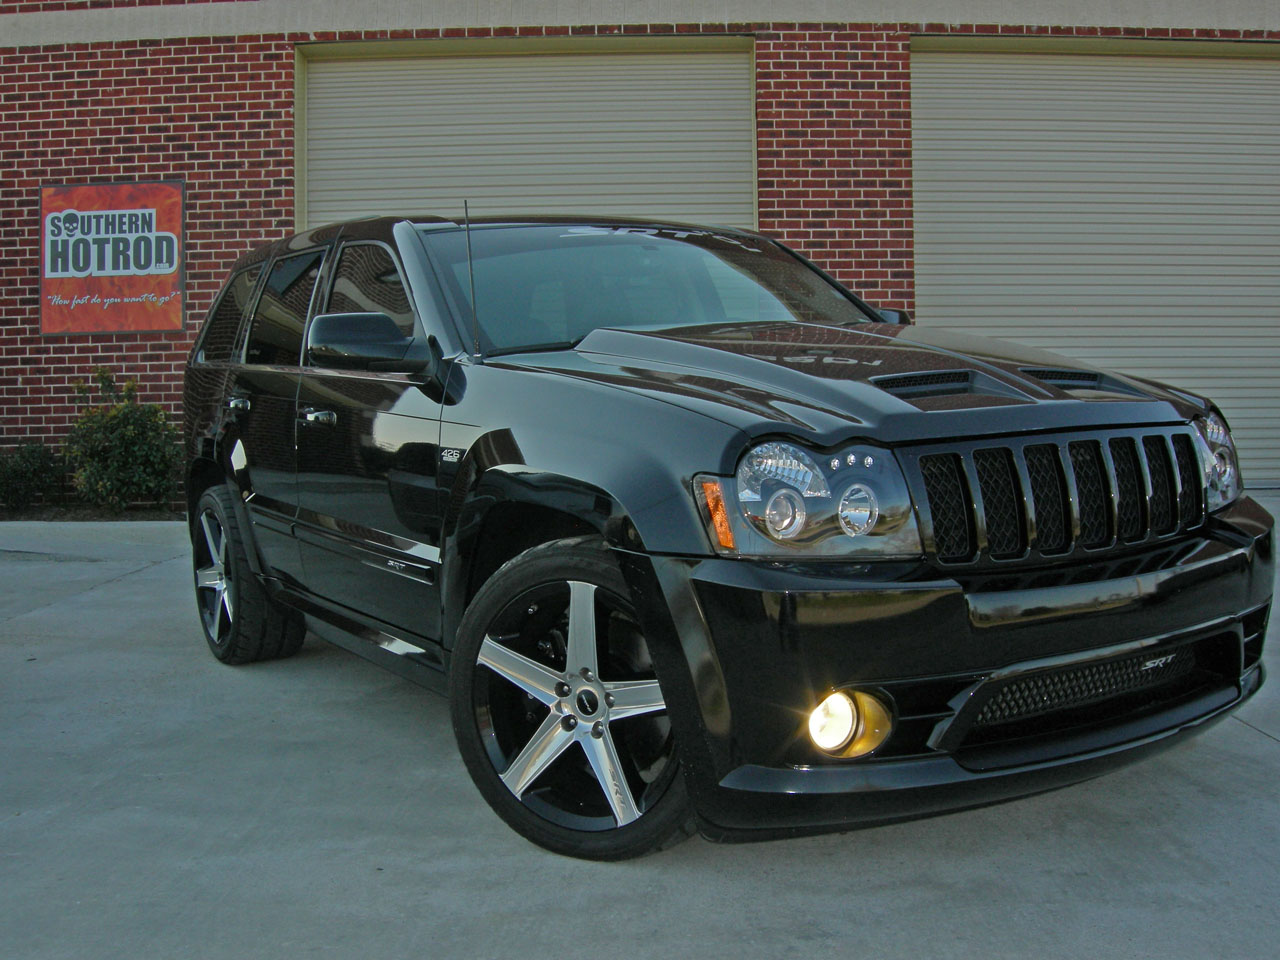 2007 Jeep Cherokee Srt8 Twinturbocreations Tt 1 4 Mile Trap Speeds 0 60 Dragtimes Com